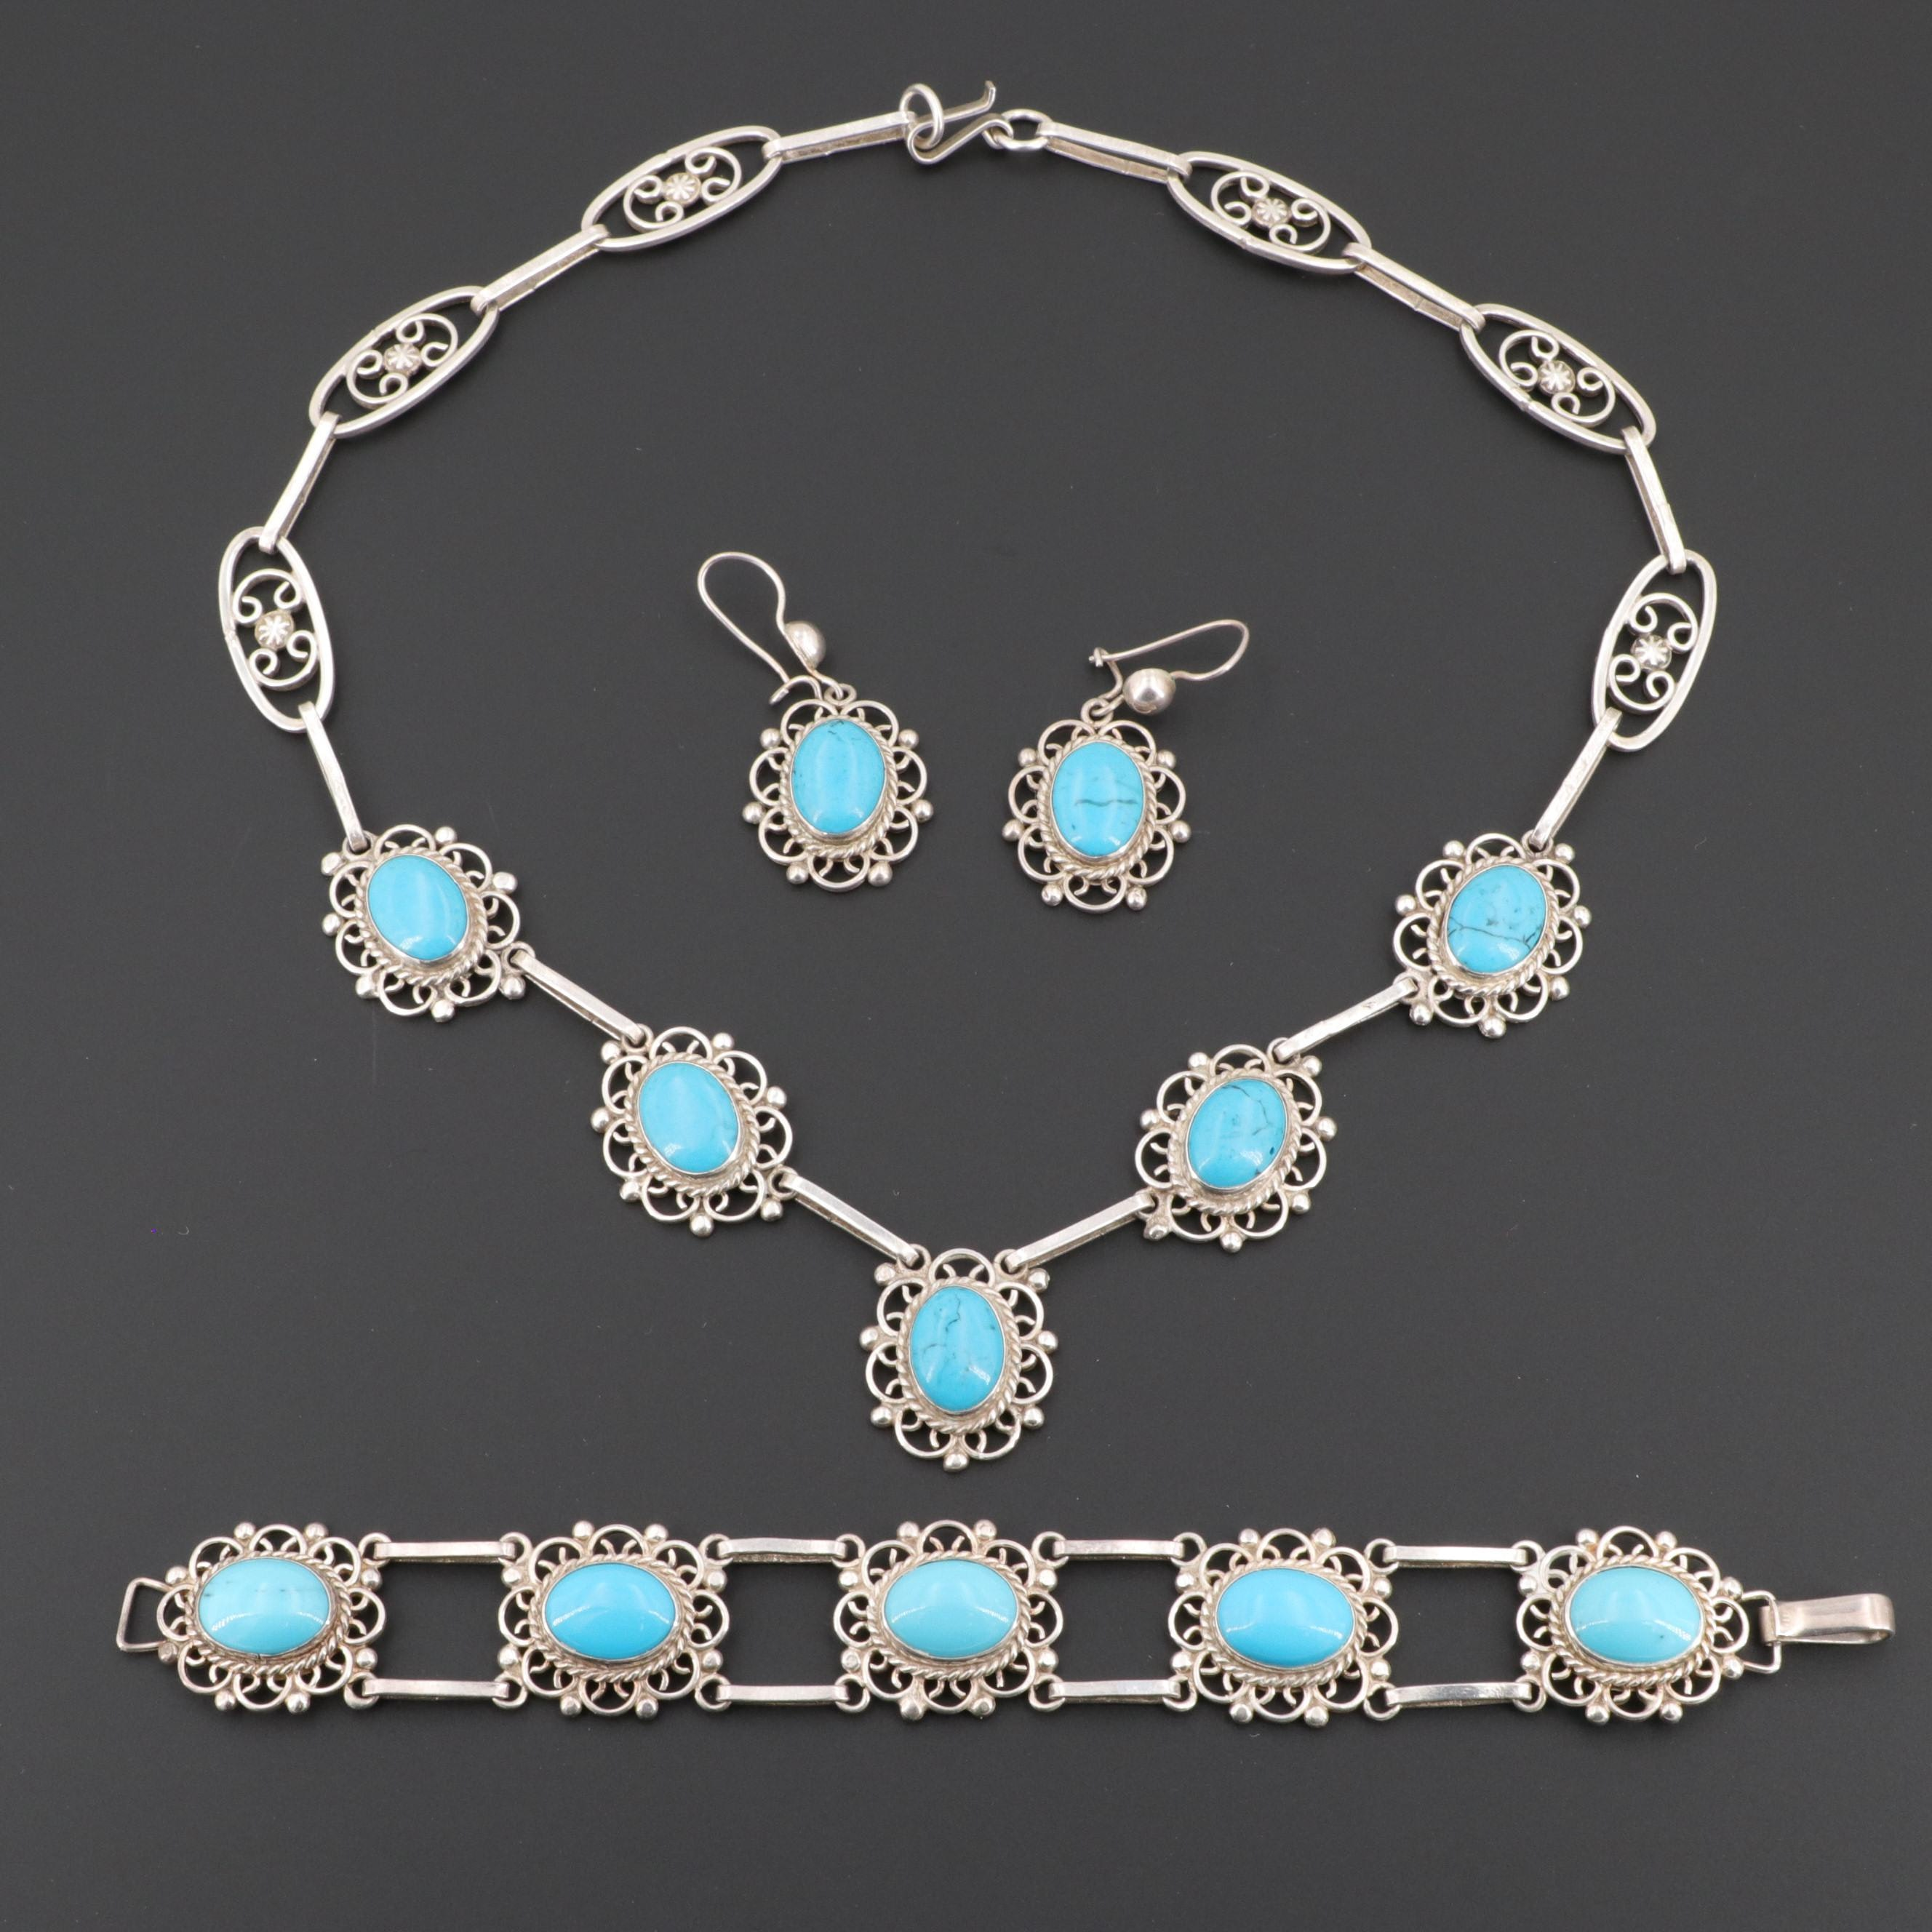 Mexican Sterling Silver Imitation Turquoise Necklace, Bracelet, and Earring Set